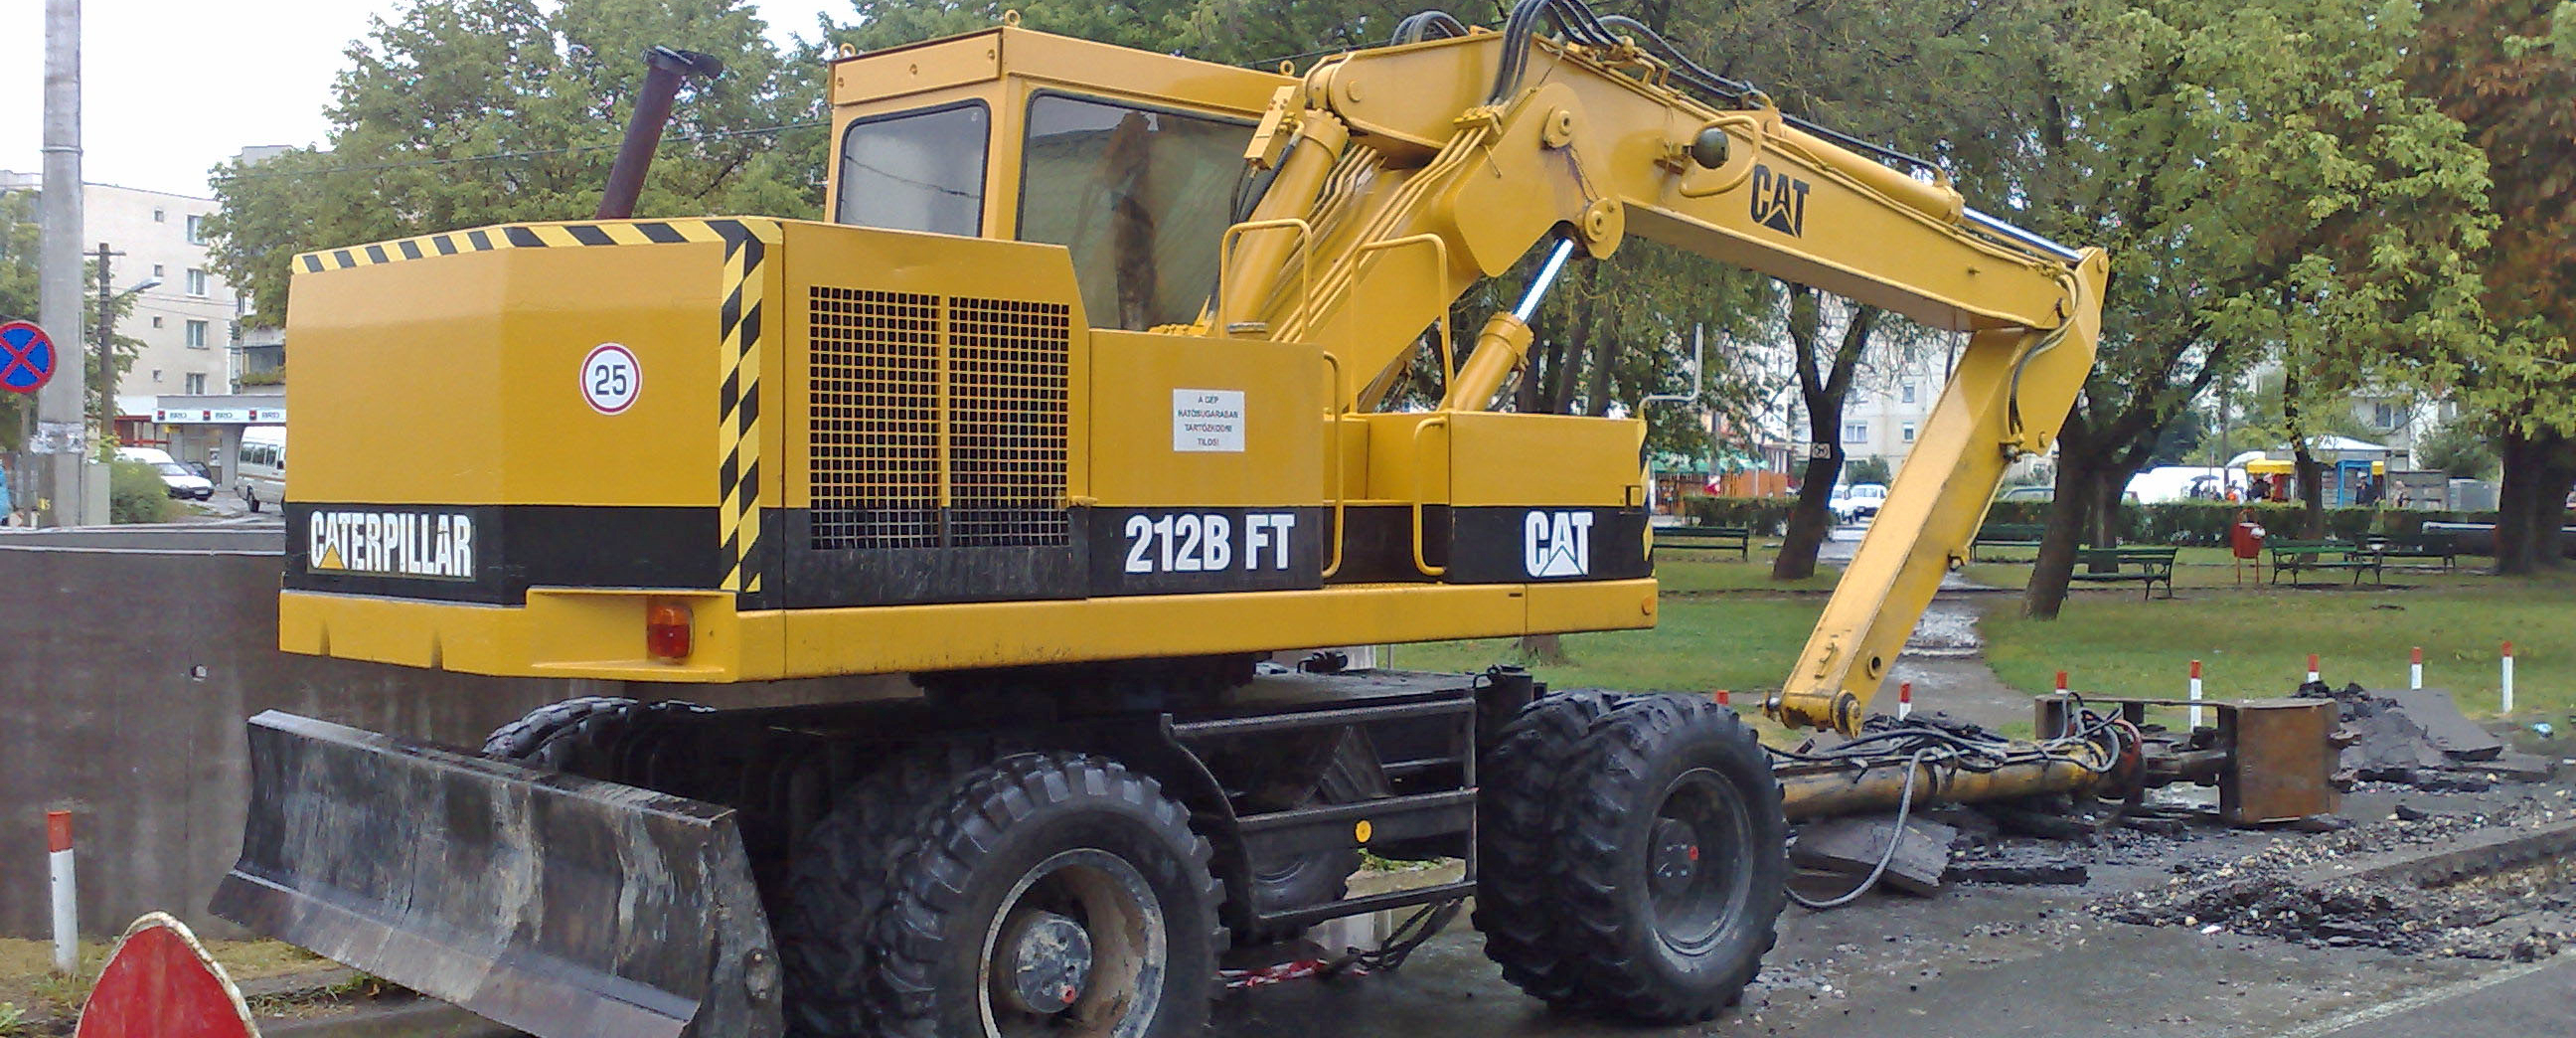 Caterpillar Cat 212b Ft Specifications Machine Market